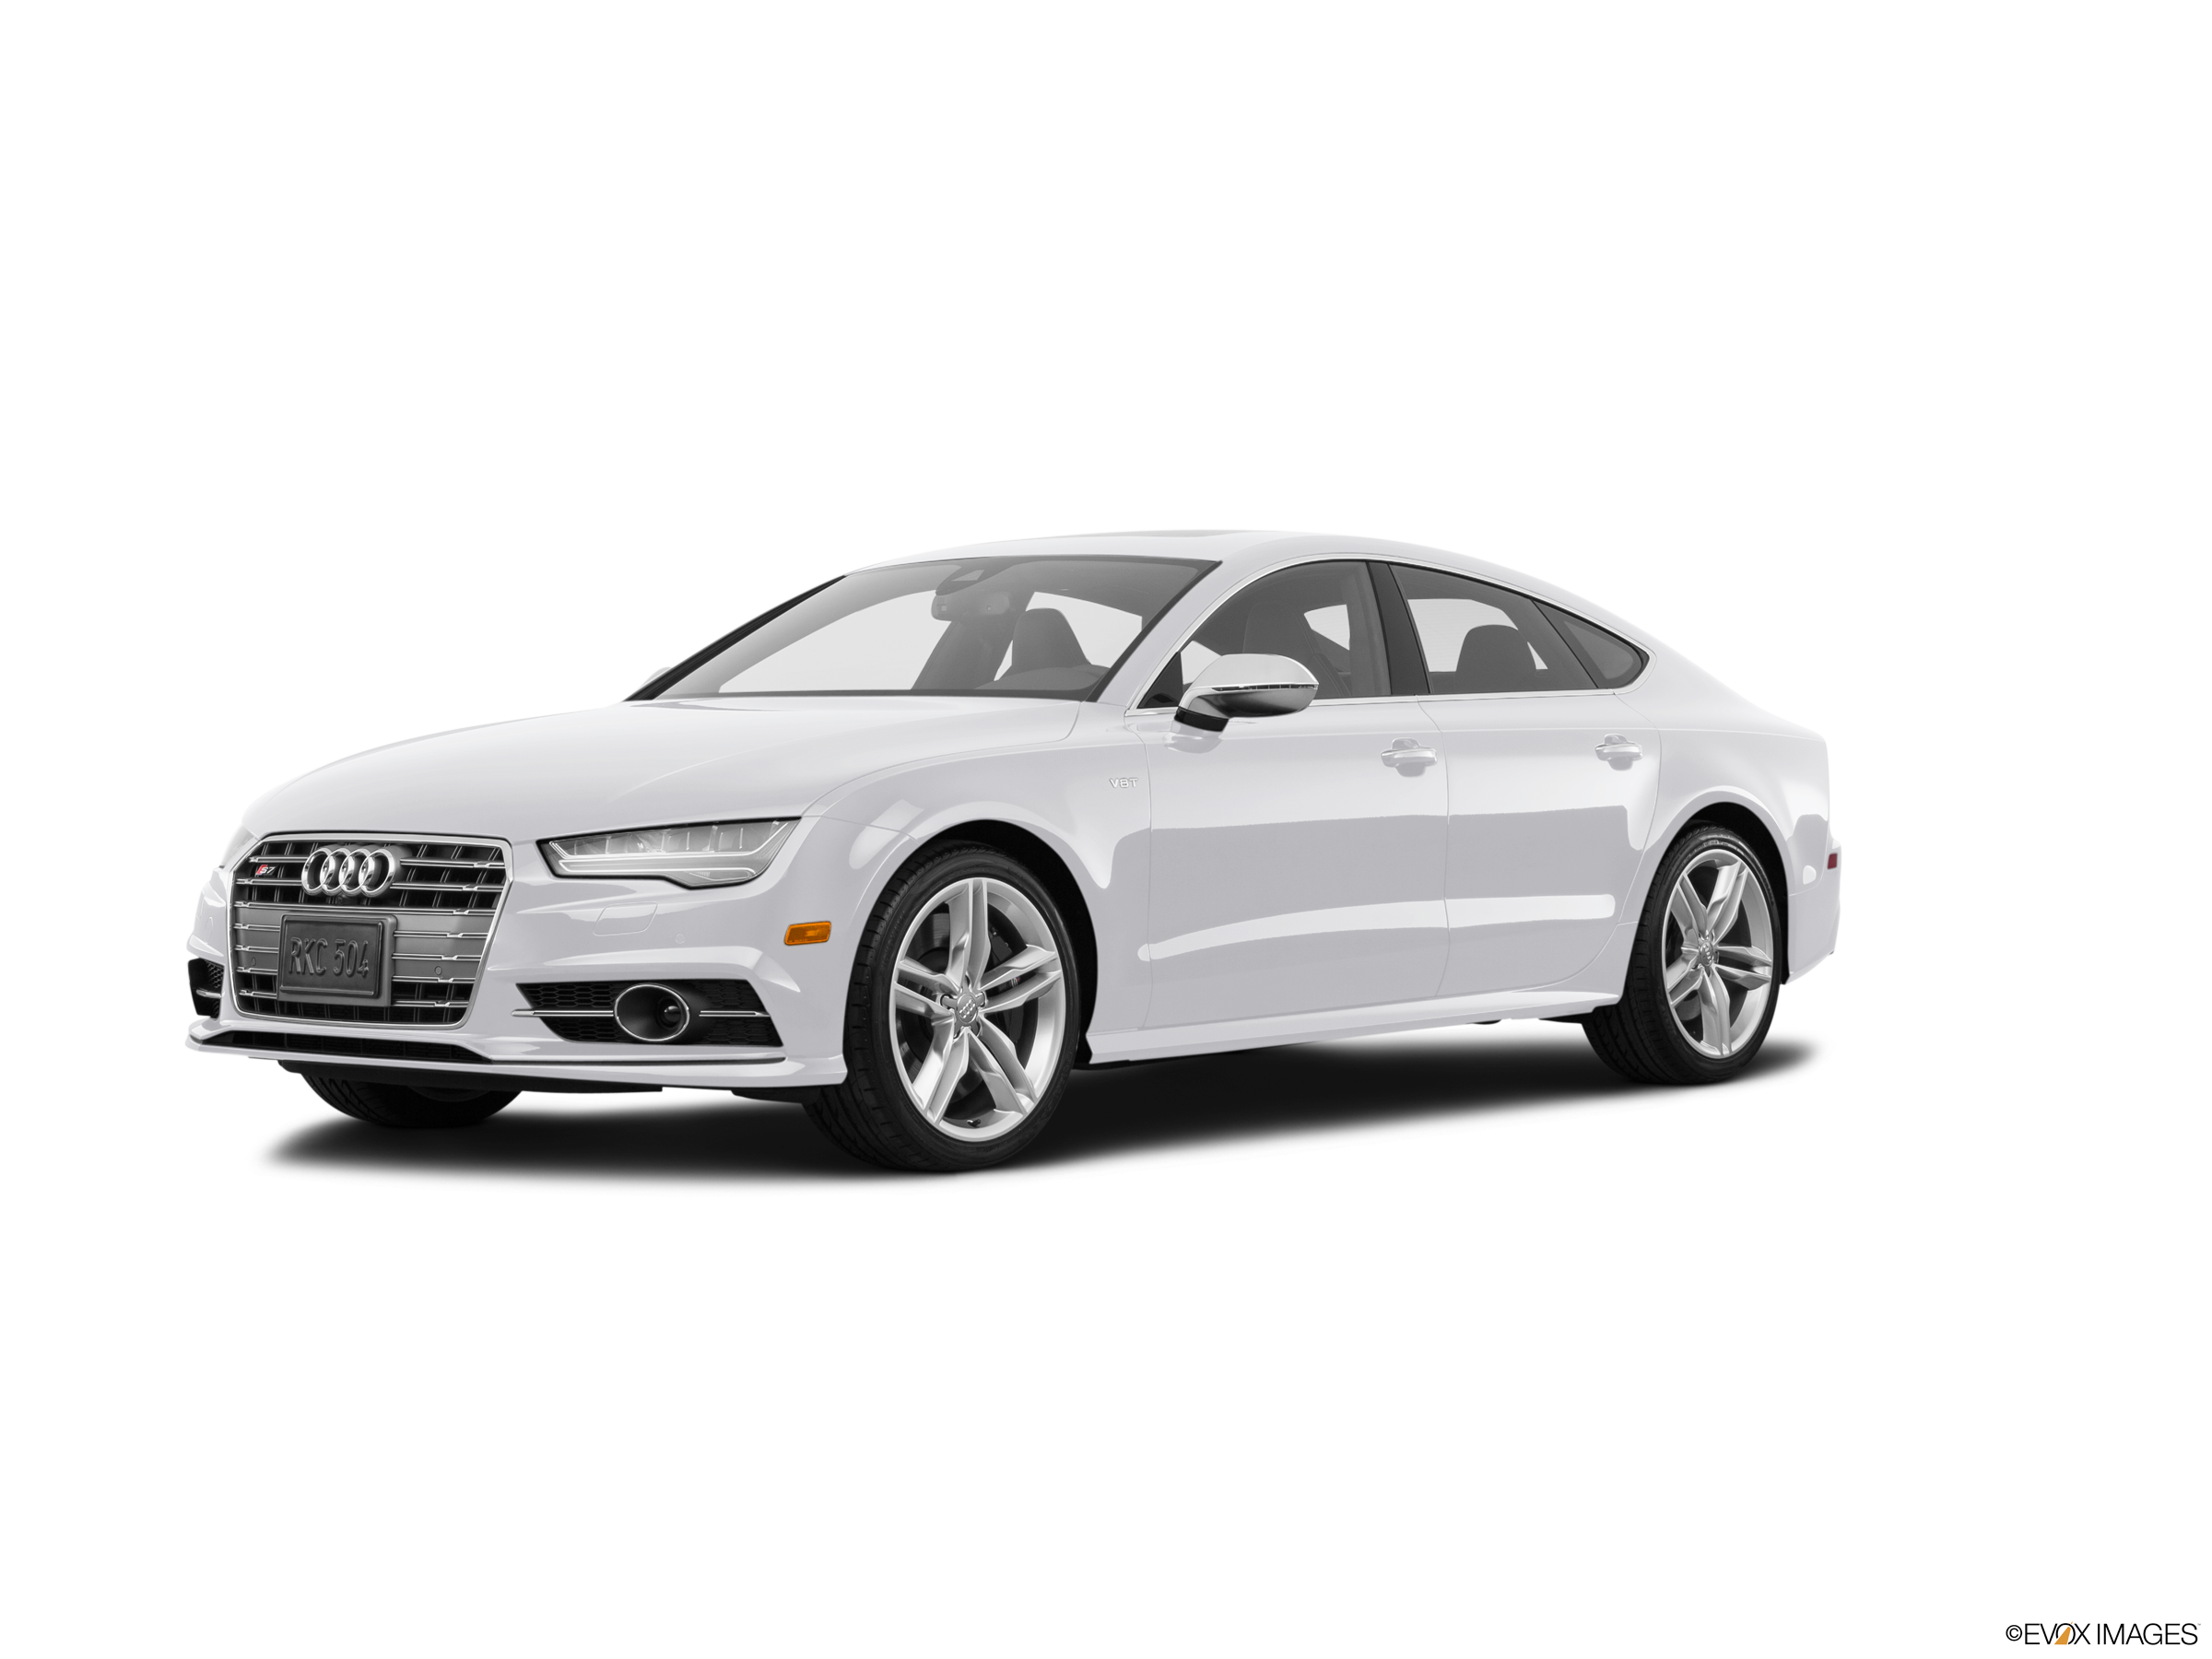 Top Expert Rated Hatchbacks of 2017 - 2017 Audi S7